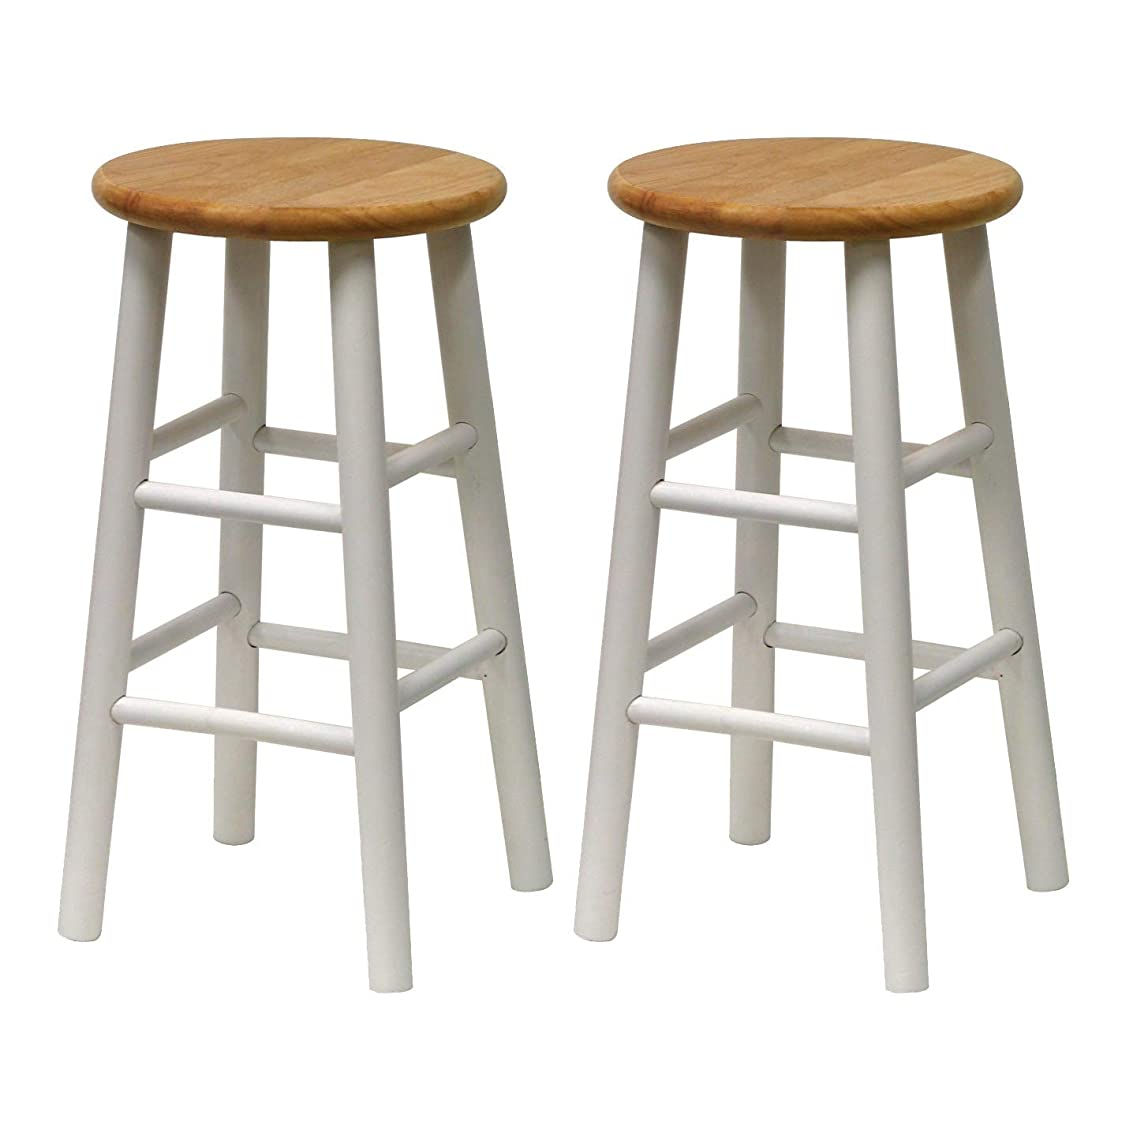 Winsome 53784 Tabby Stool, White iwpds9584534815